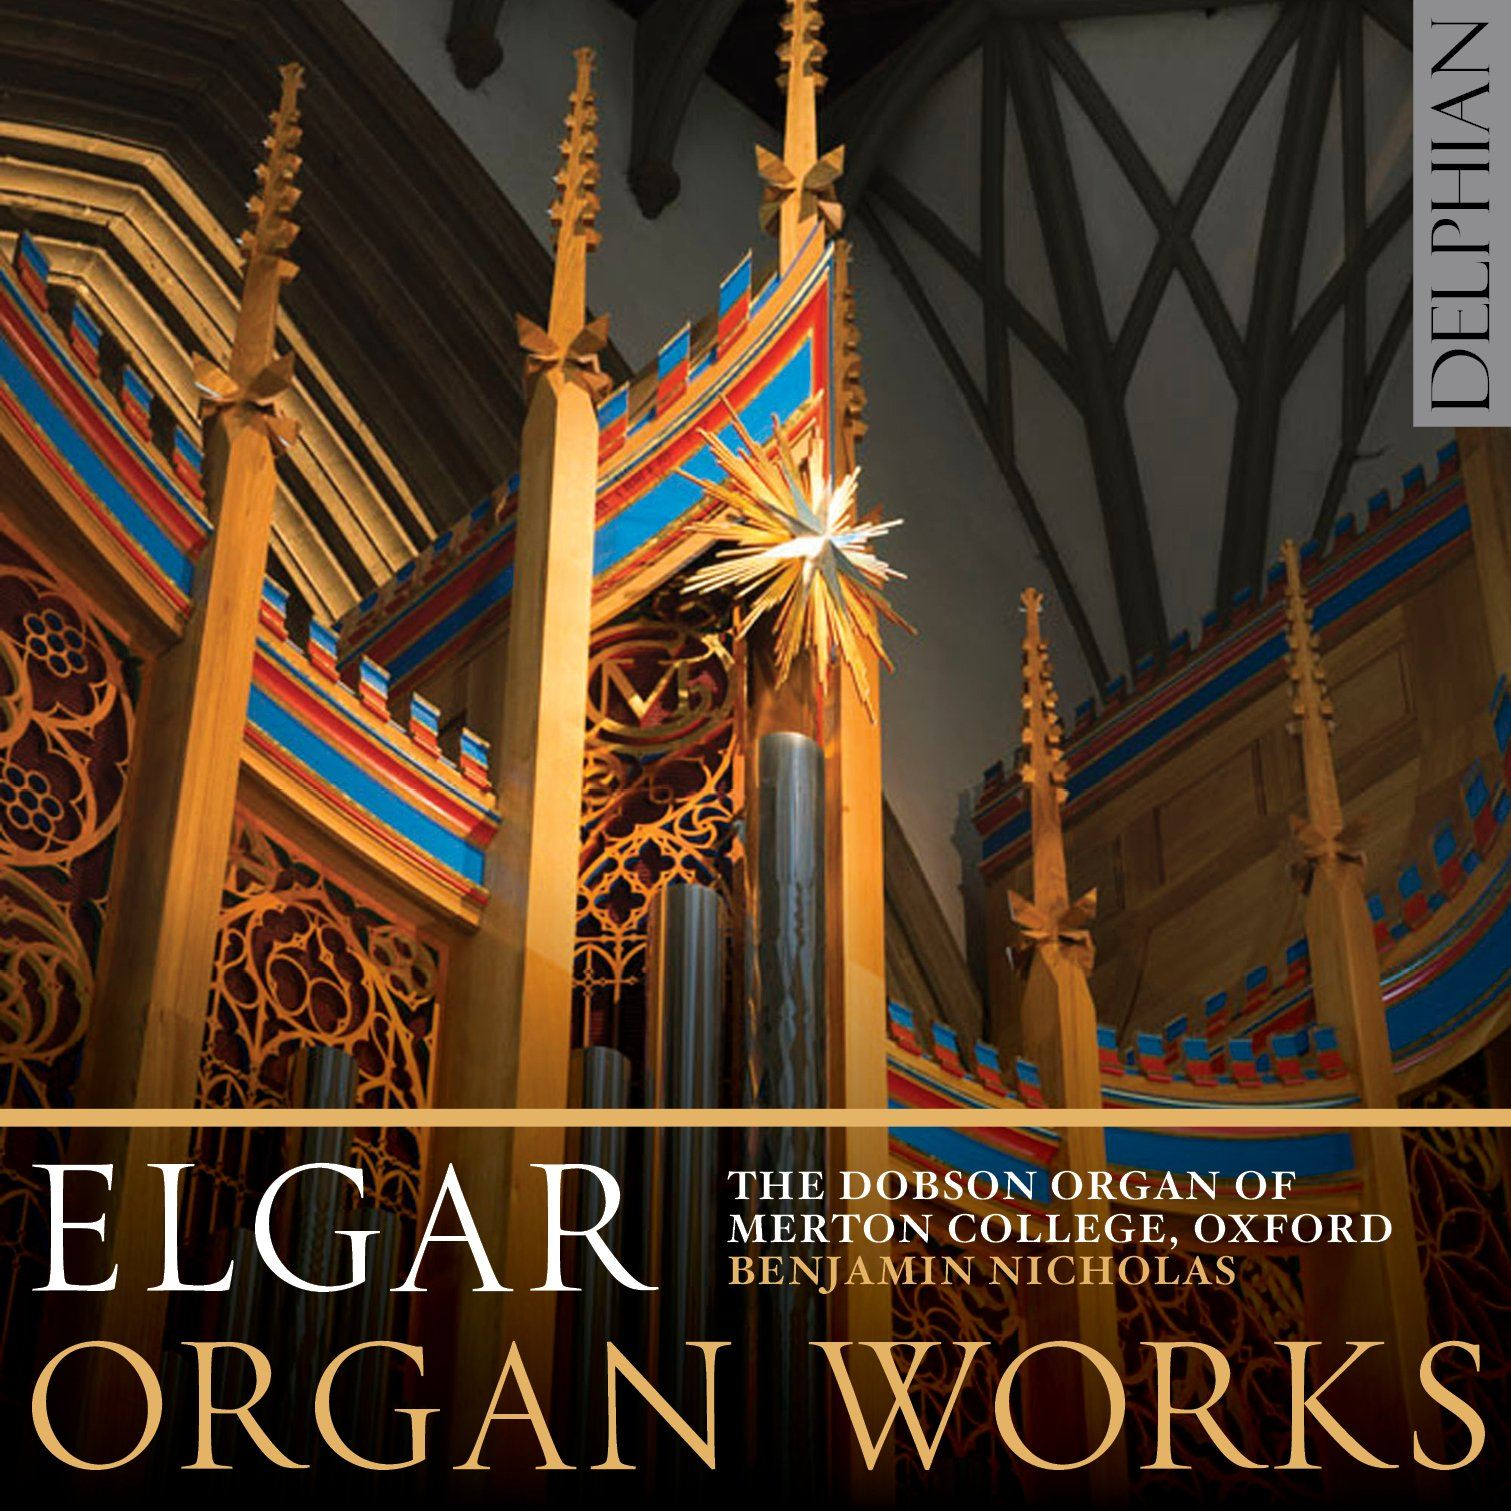 Elgar: Organ Works CD Delphian Records